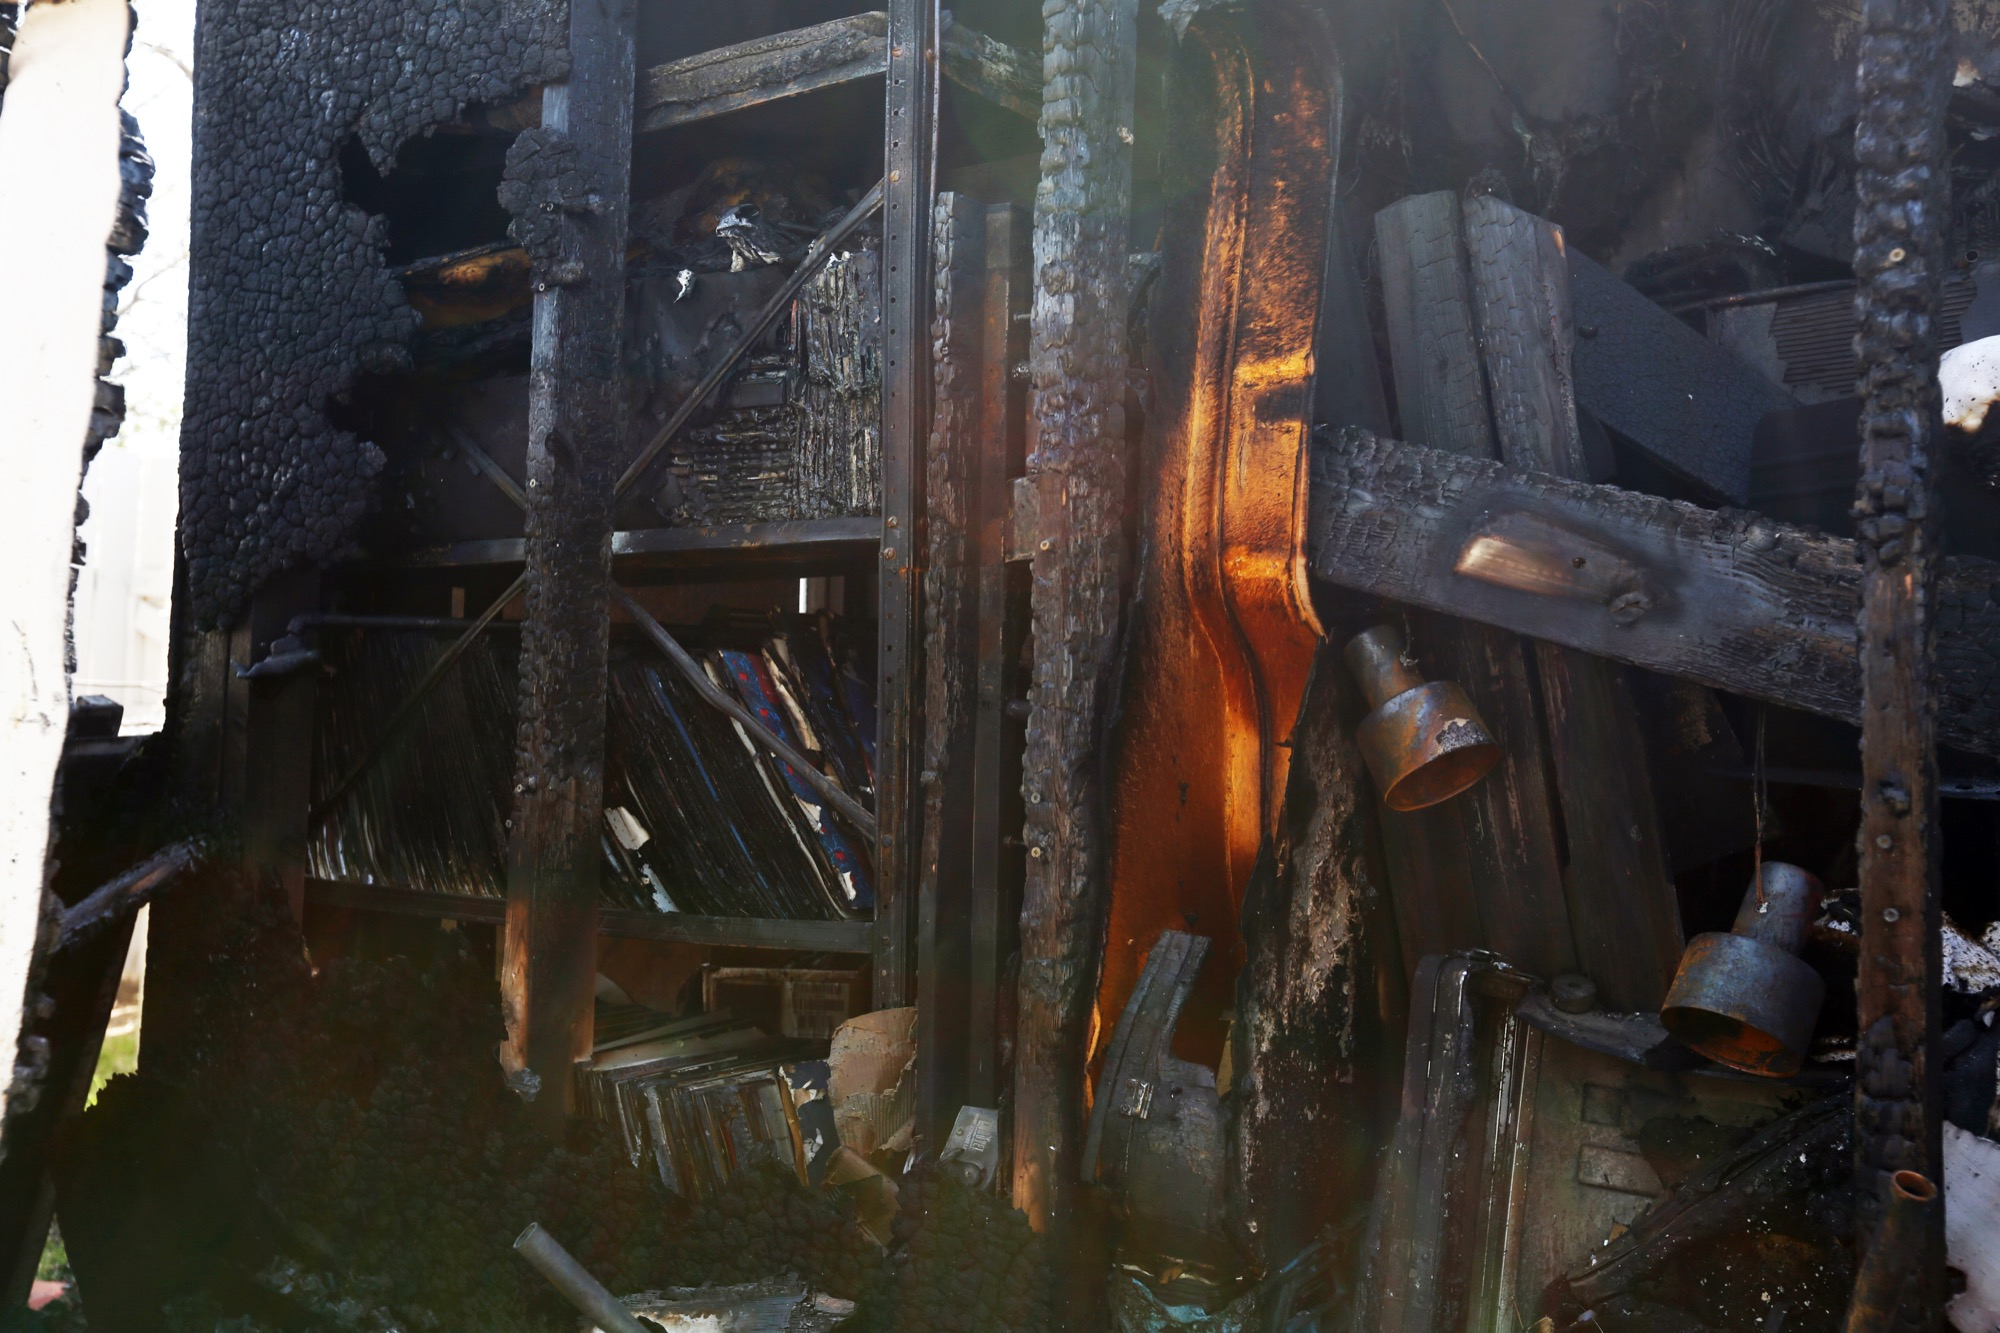 A closeup of the aftermath of Sunday's shed fire on Basswood Bay, revealing a collection of music equipment and records that were left damaged in its wake.